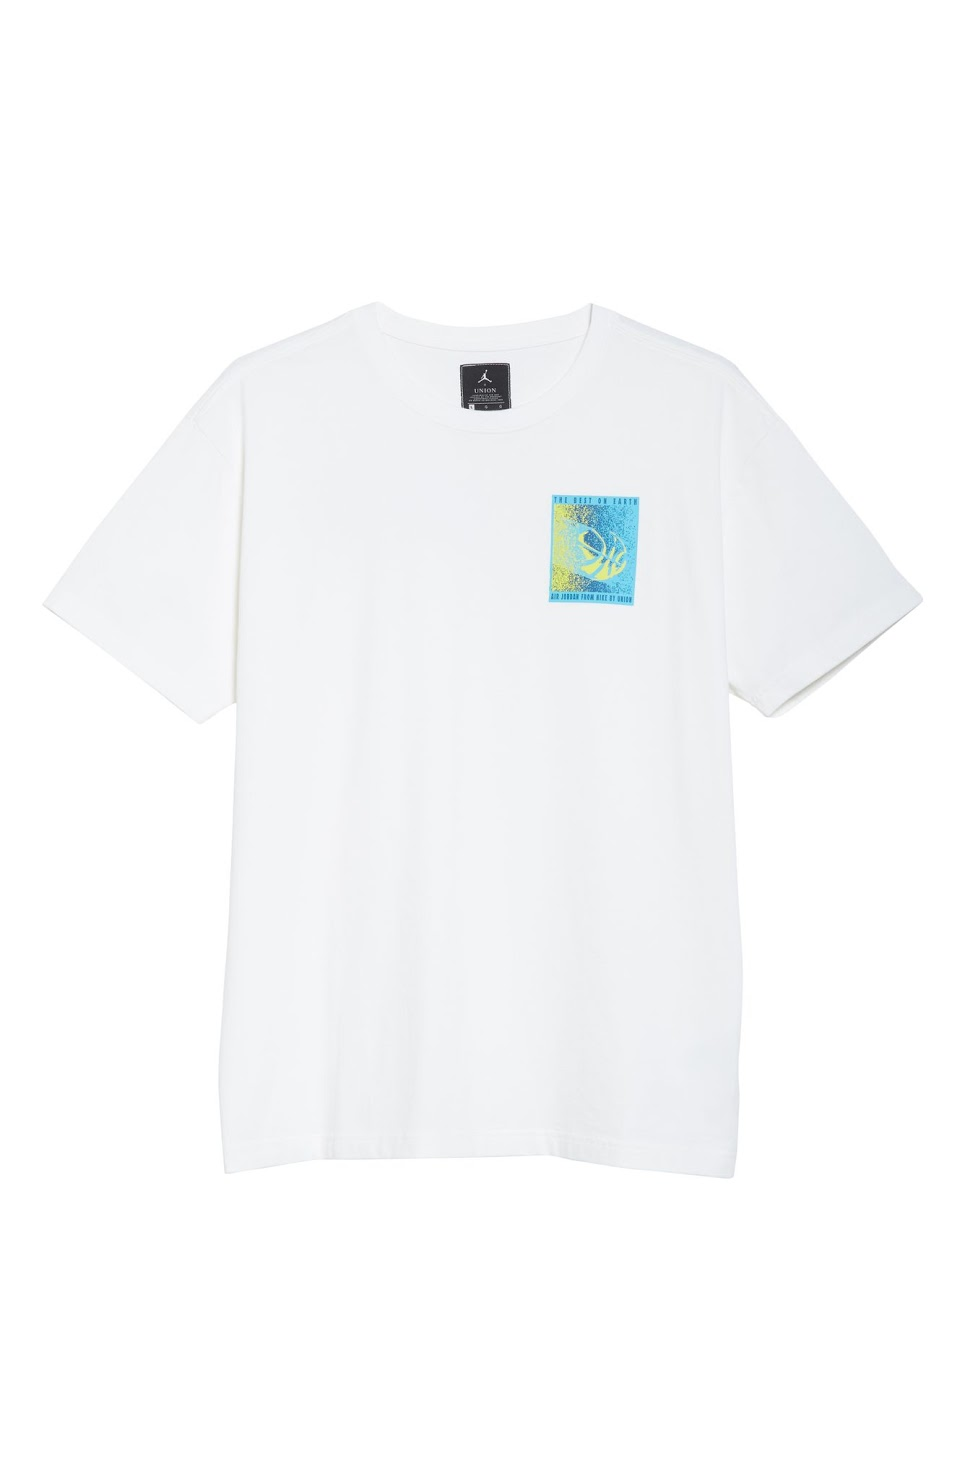 Jordan_Short Sleeve T-Shirt in White_$50.jpeg